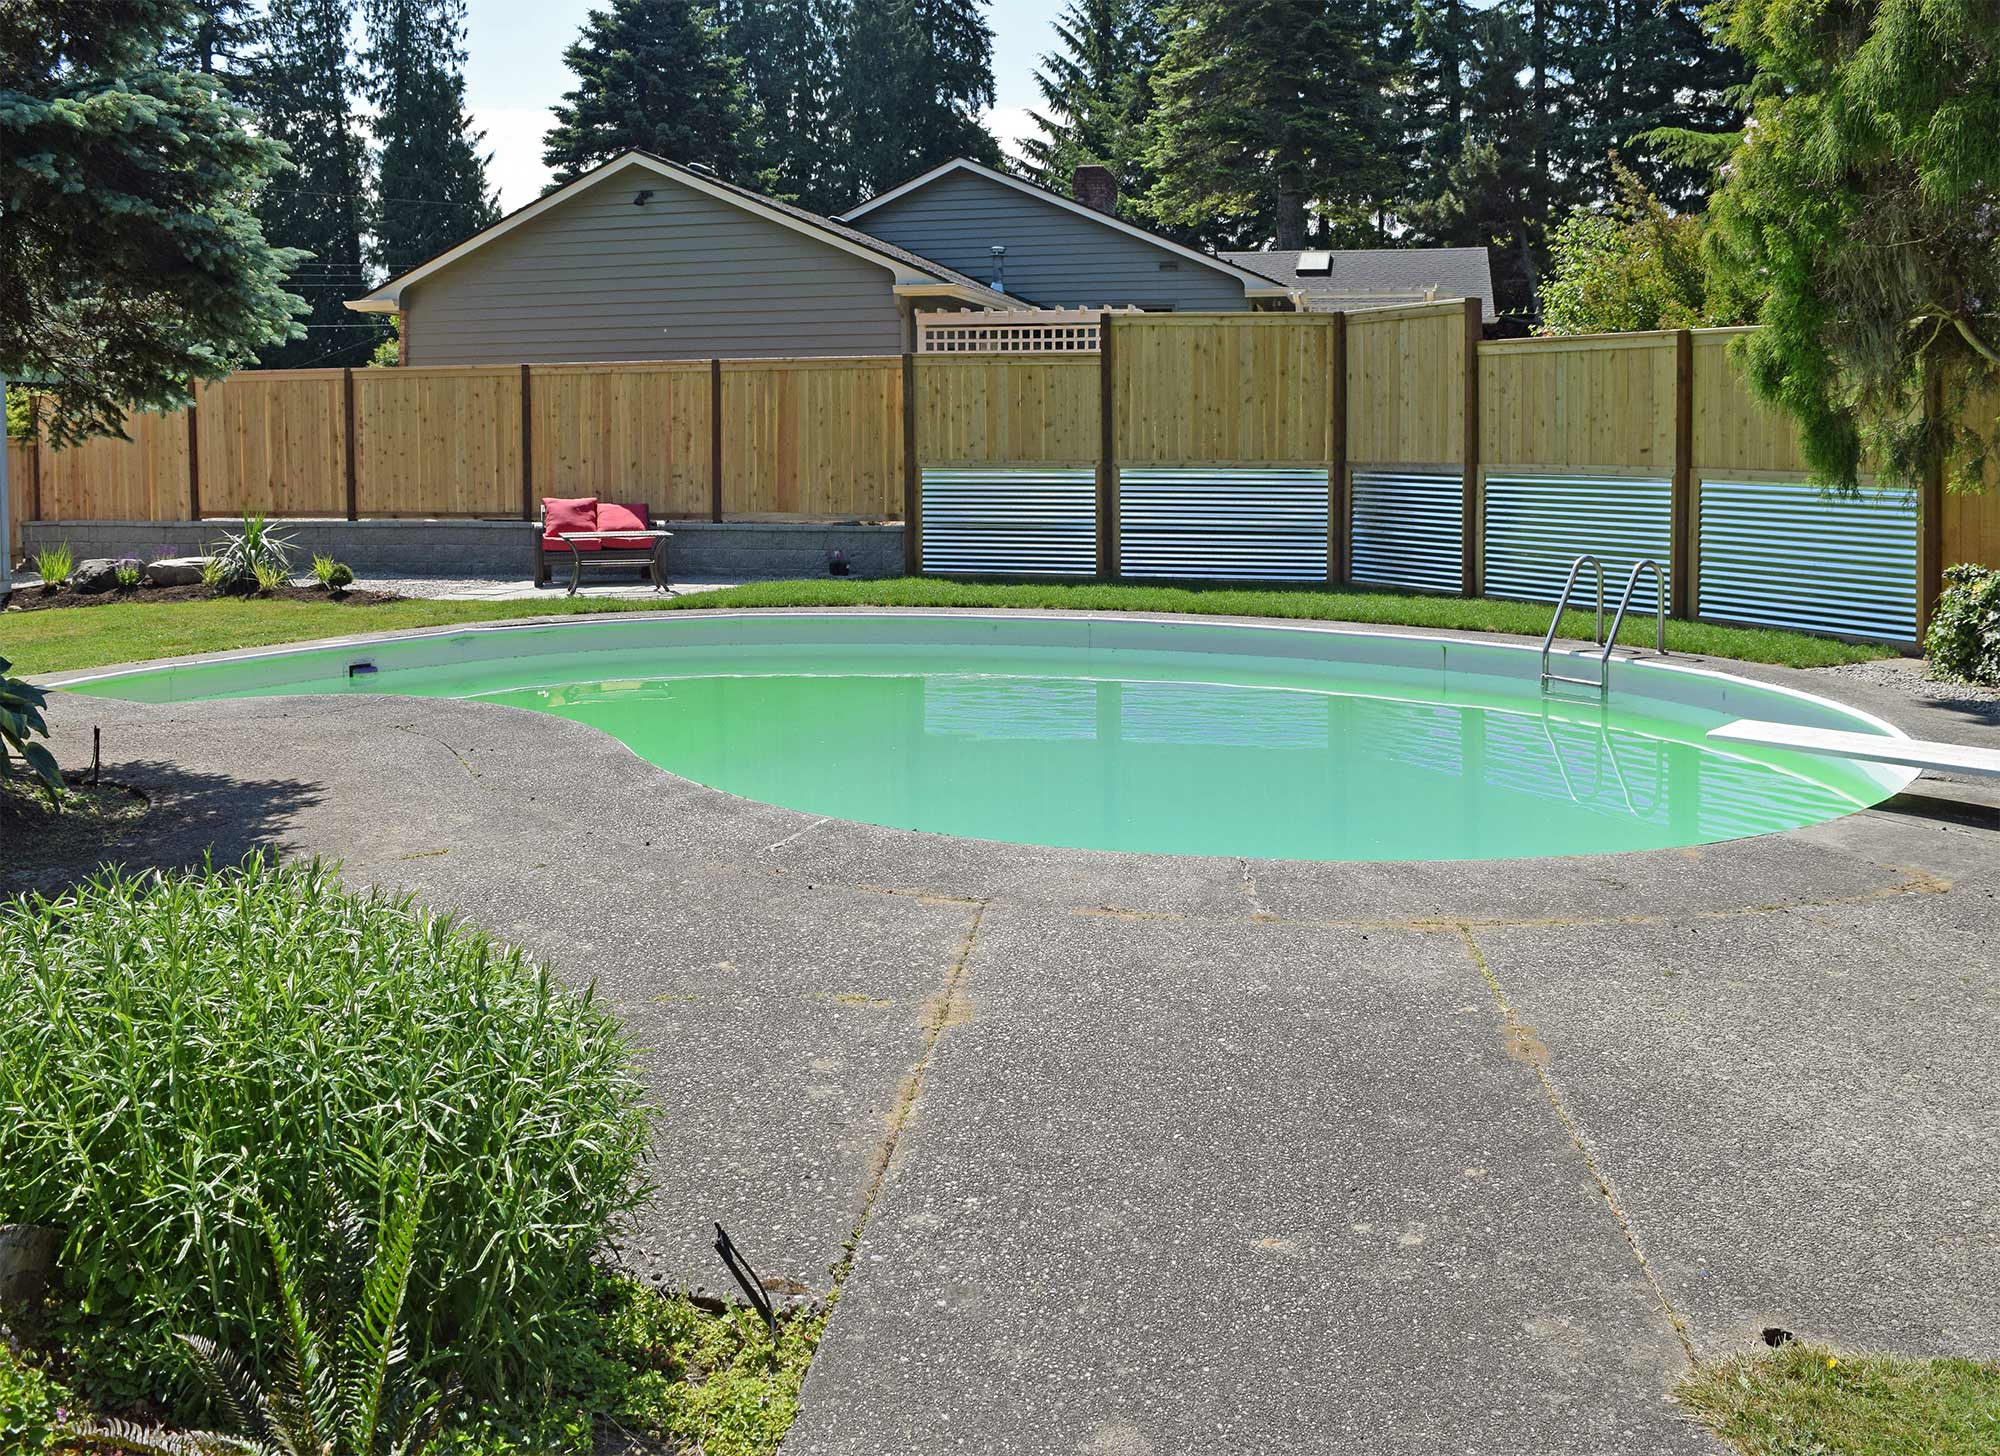 ... Click To Enlarge Image 08 Poolside Picture Perfect Backyard  Picture Perfect Backyard ...